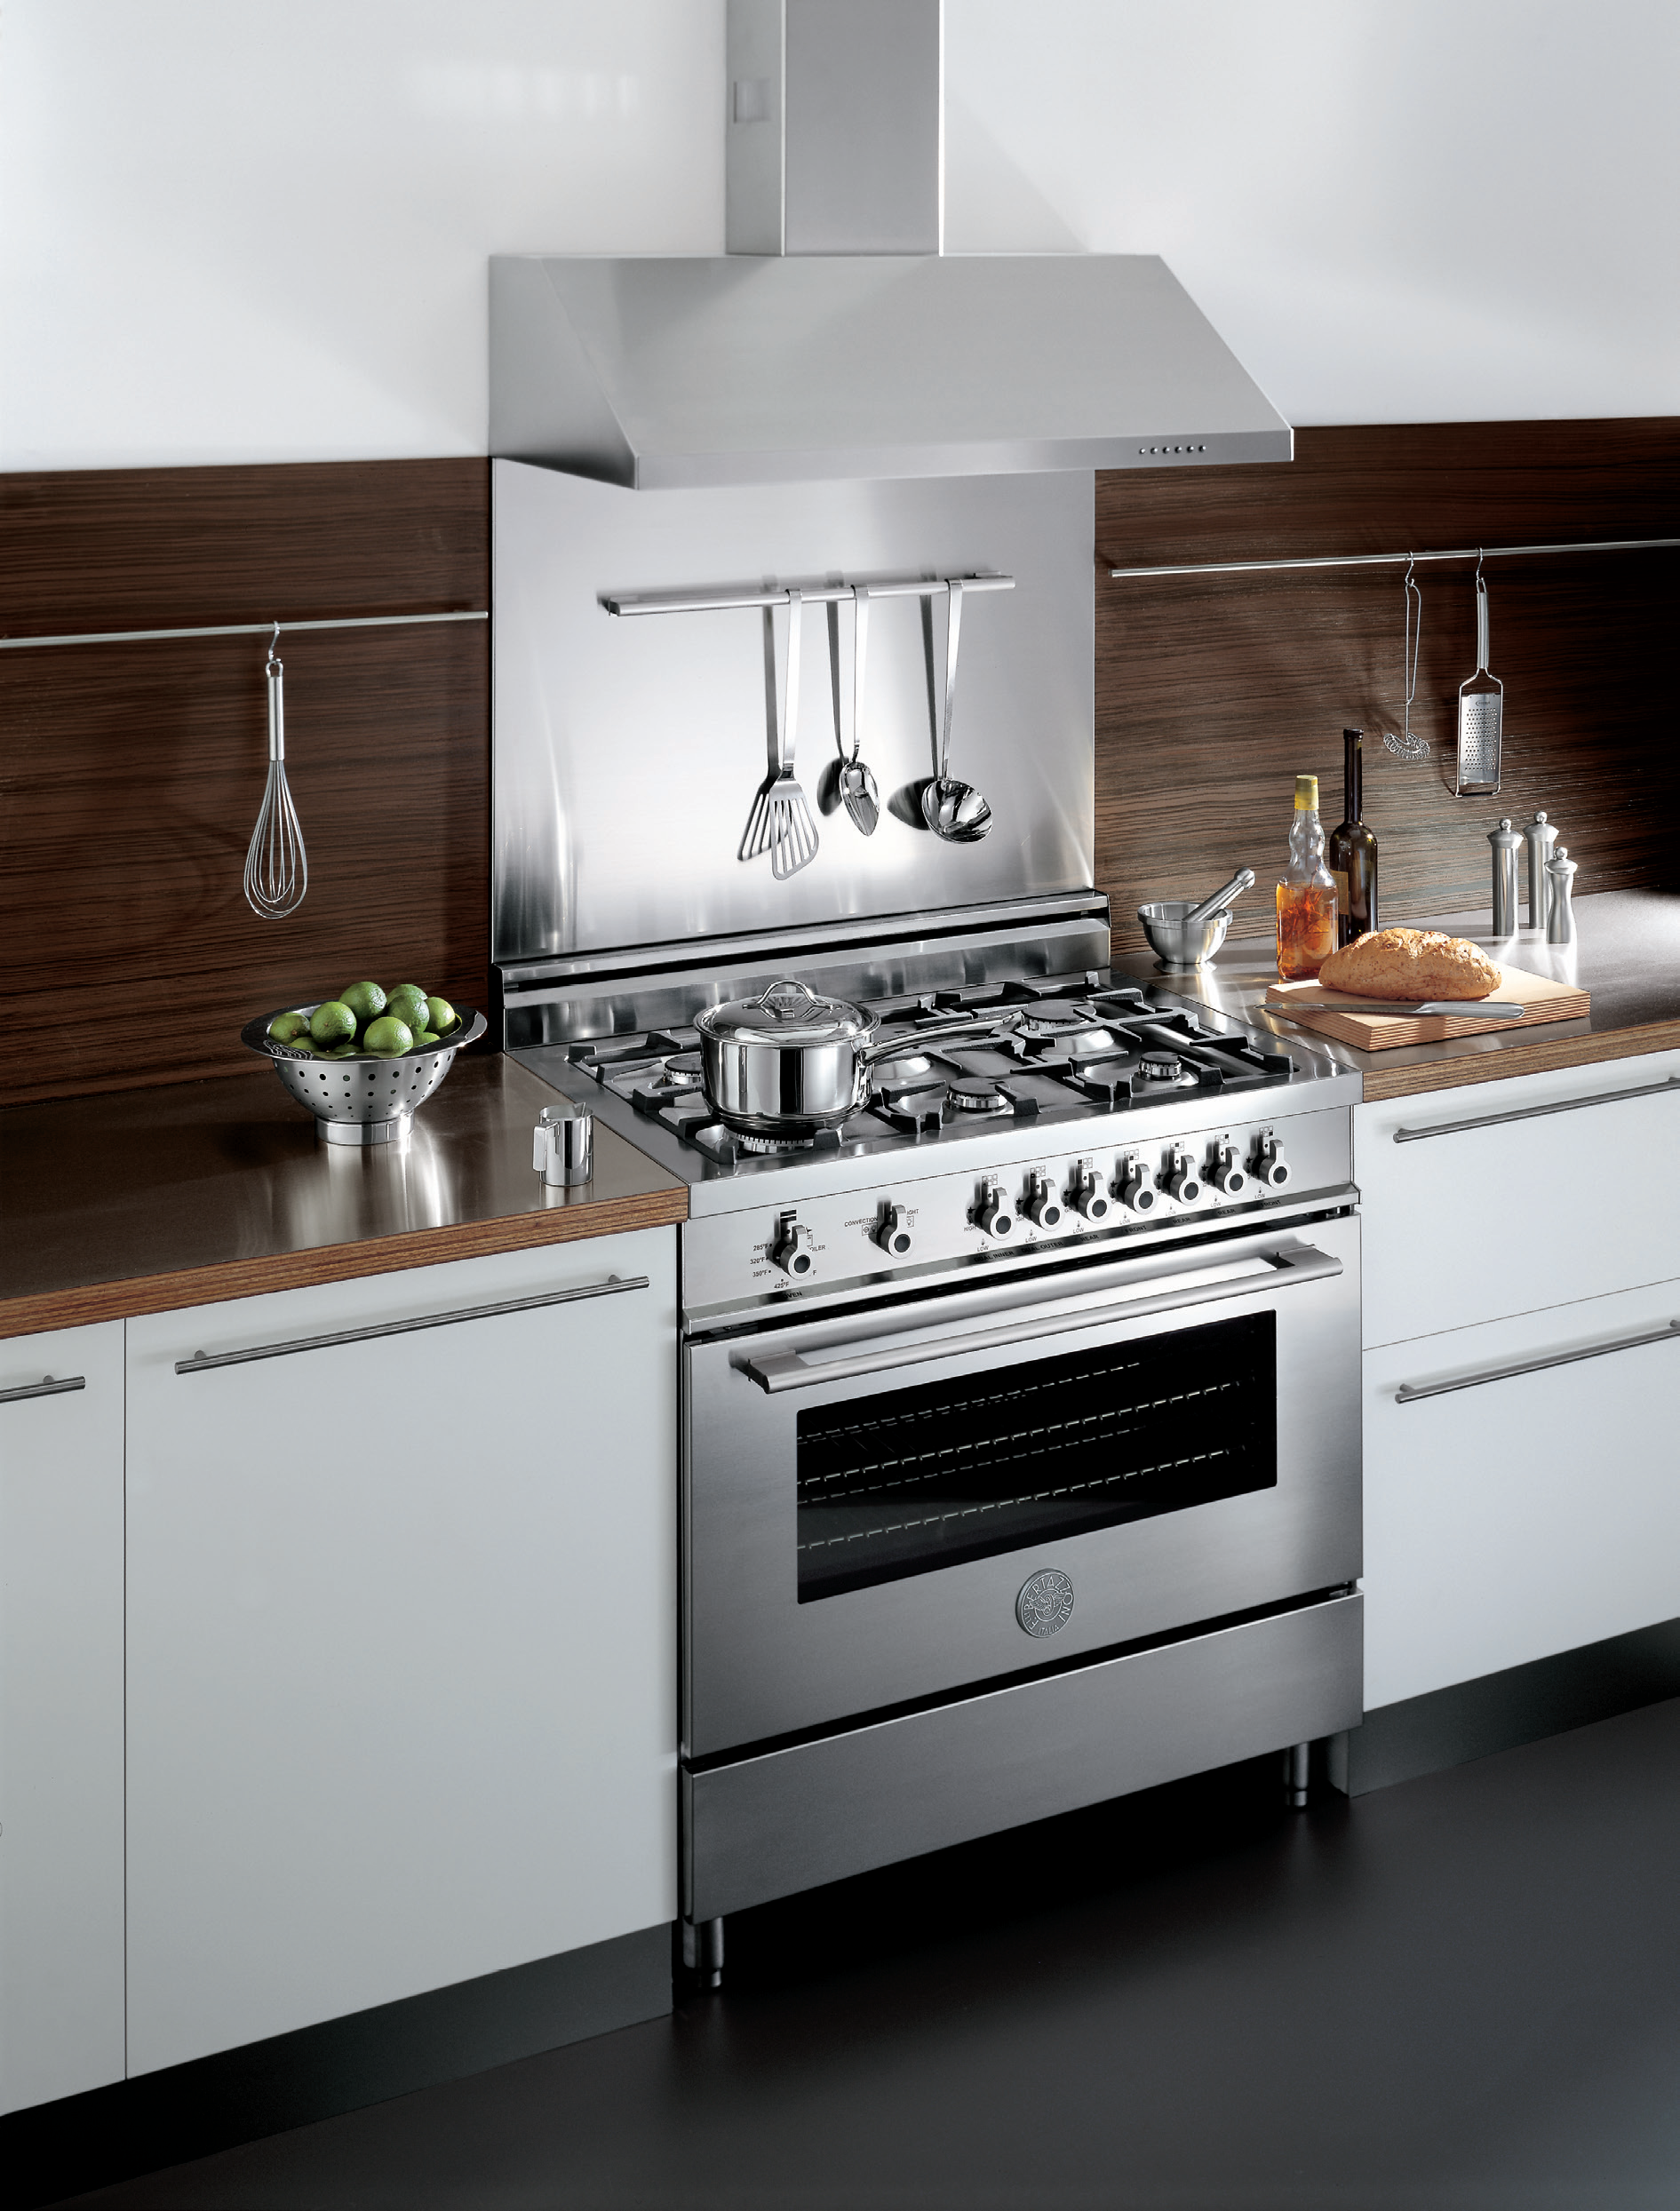 Efficiency Kitchen The Ideal Kitchen Setup Efficiency And Style Meet In This